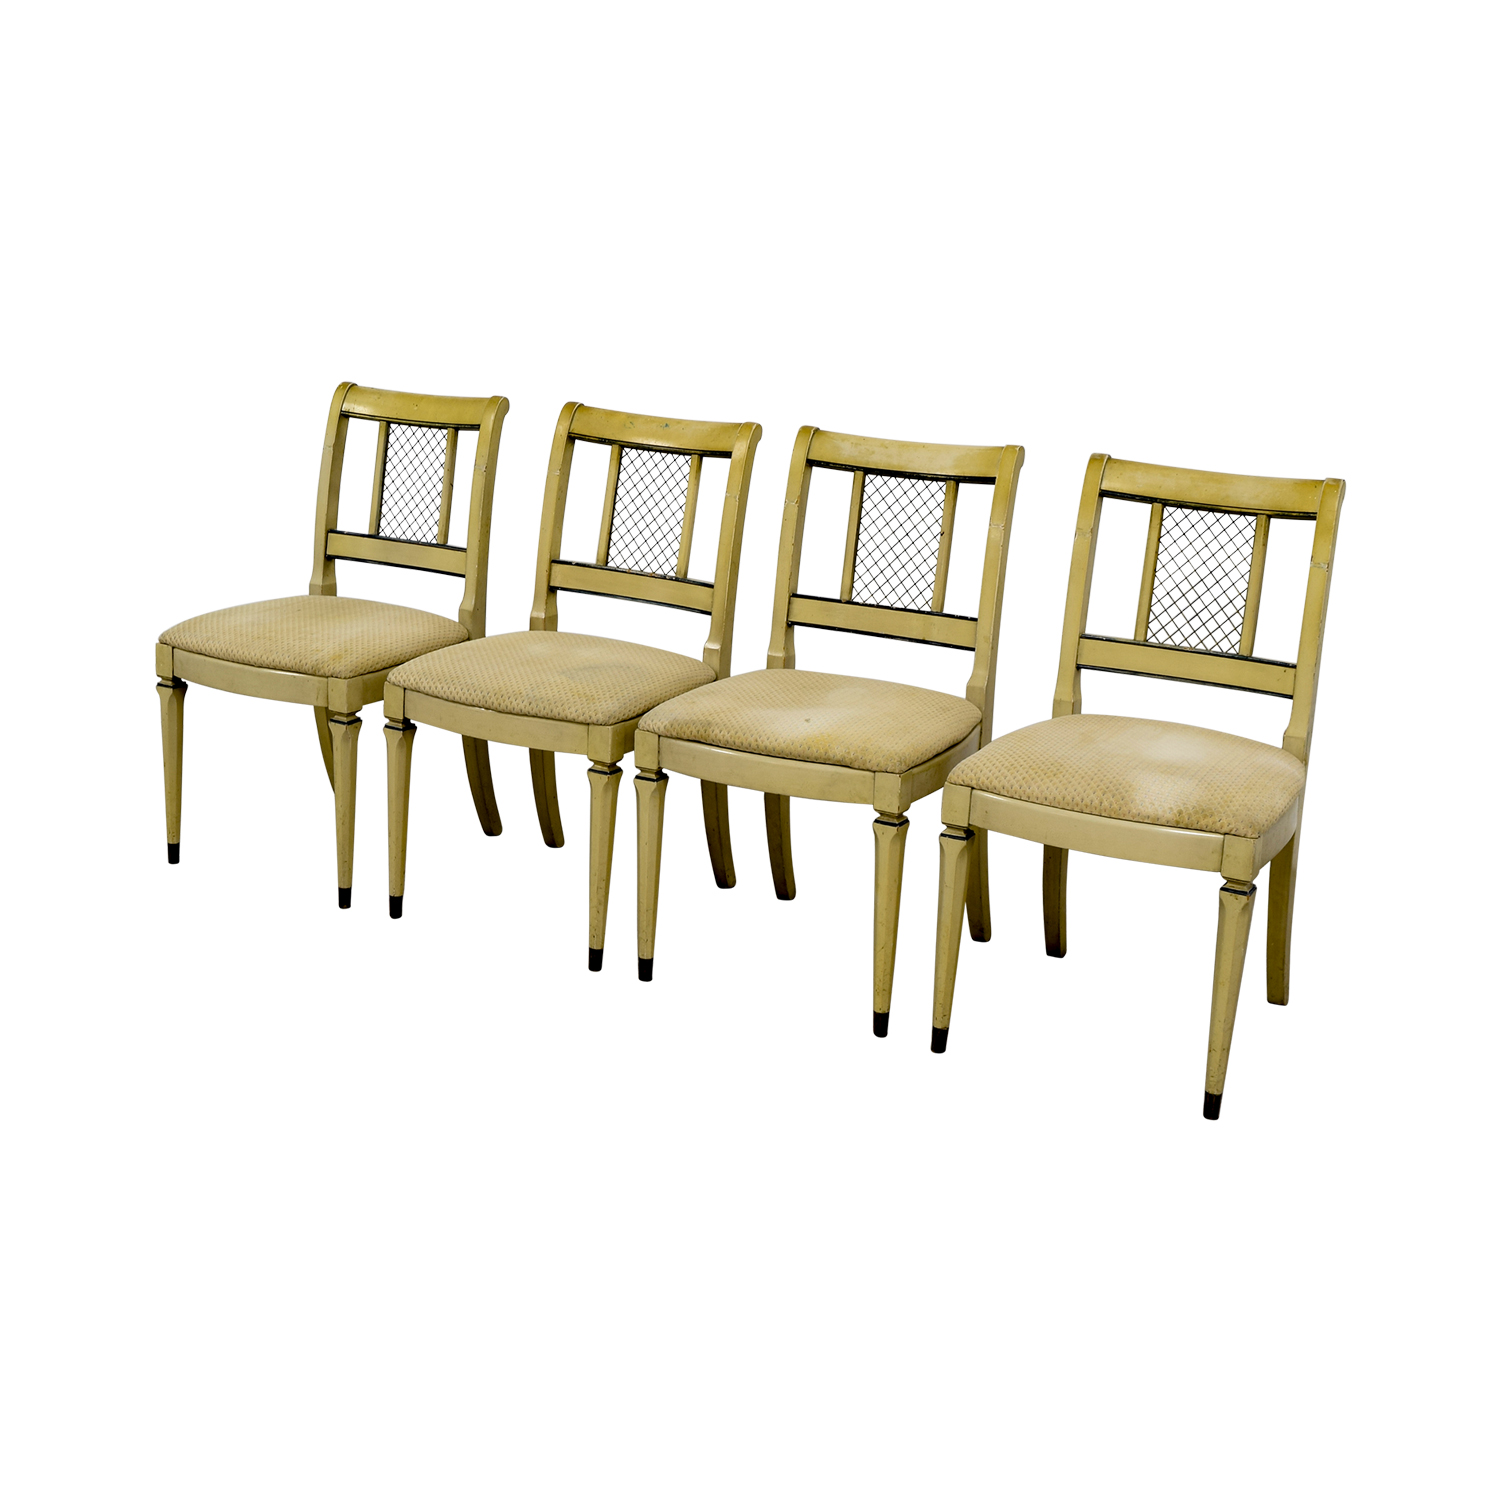 buy Vintage Tan Dining Chairs online